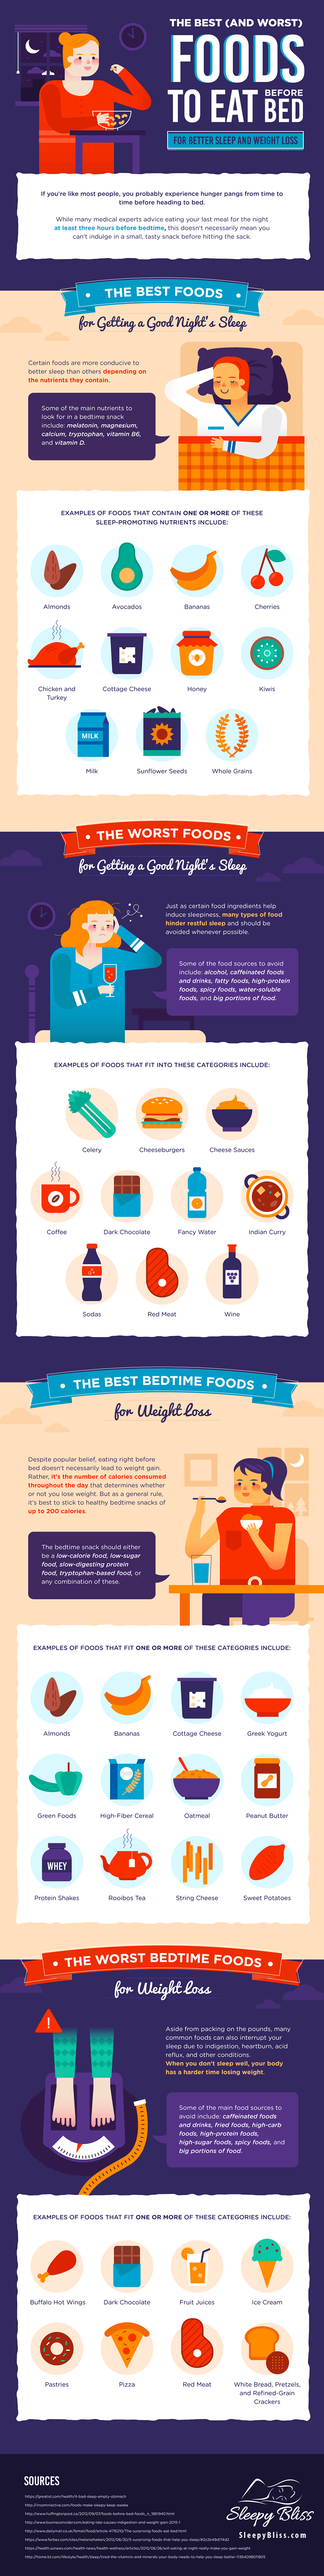 Best (And Worst) Foods To Eat Before Bed [Infographic]